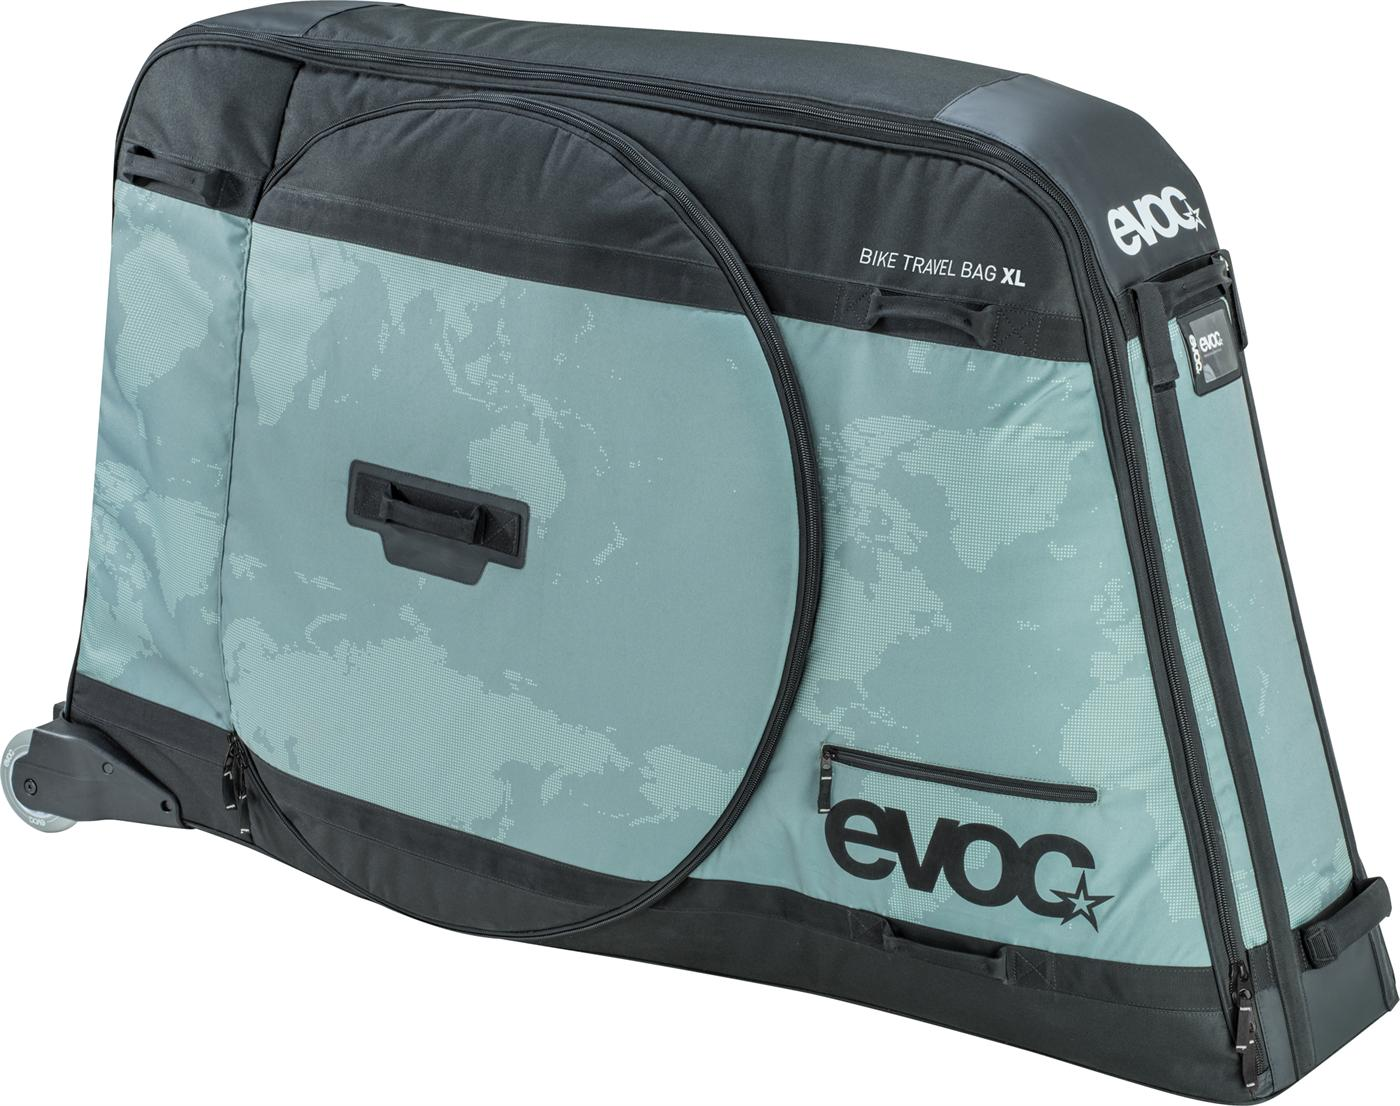 WEB_Image EVOC Bike Travel Bag 100405100-bike-travel-bag-xl1995247236.jpg